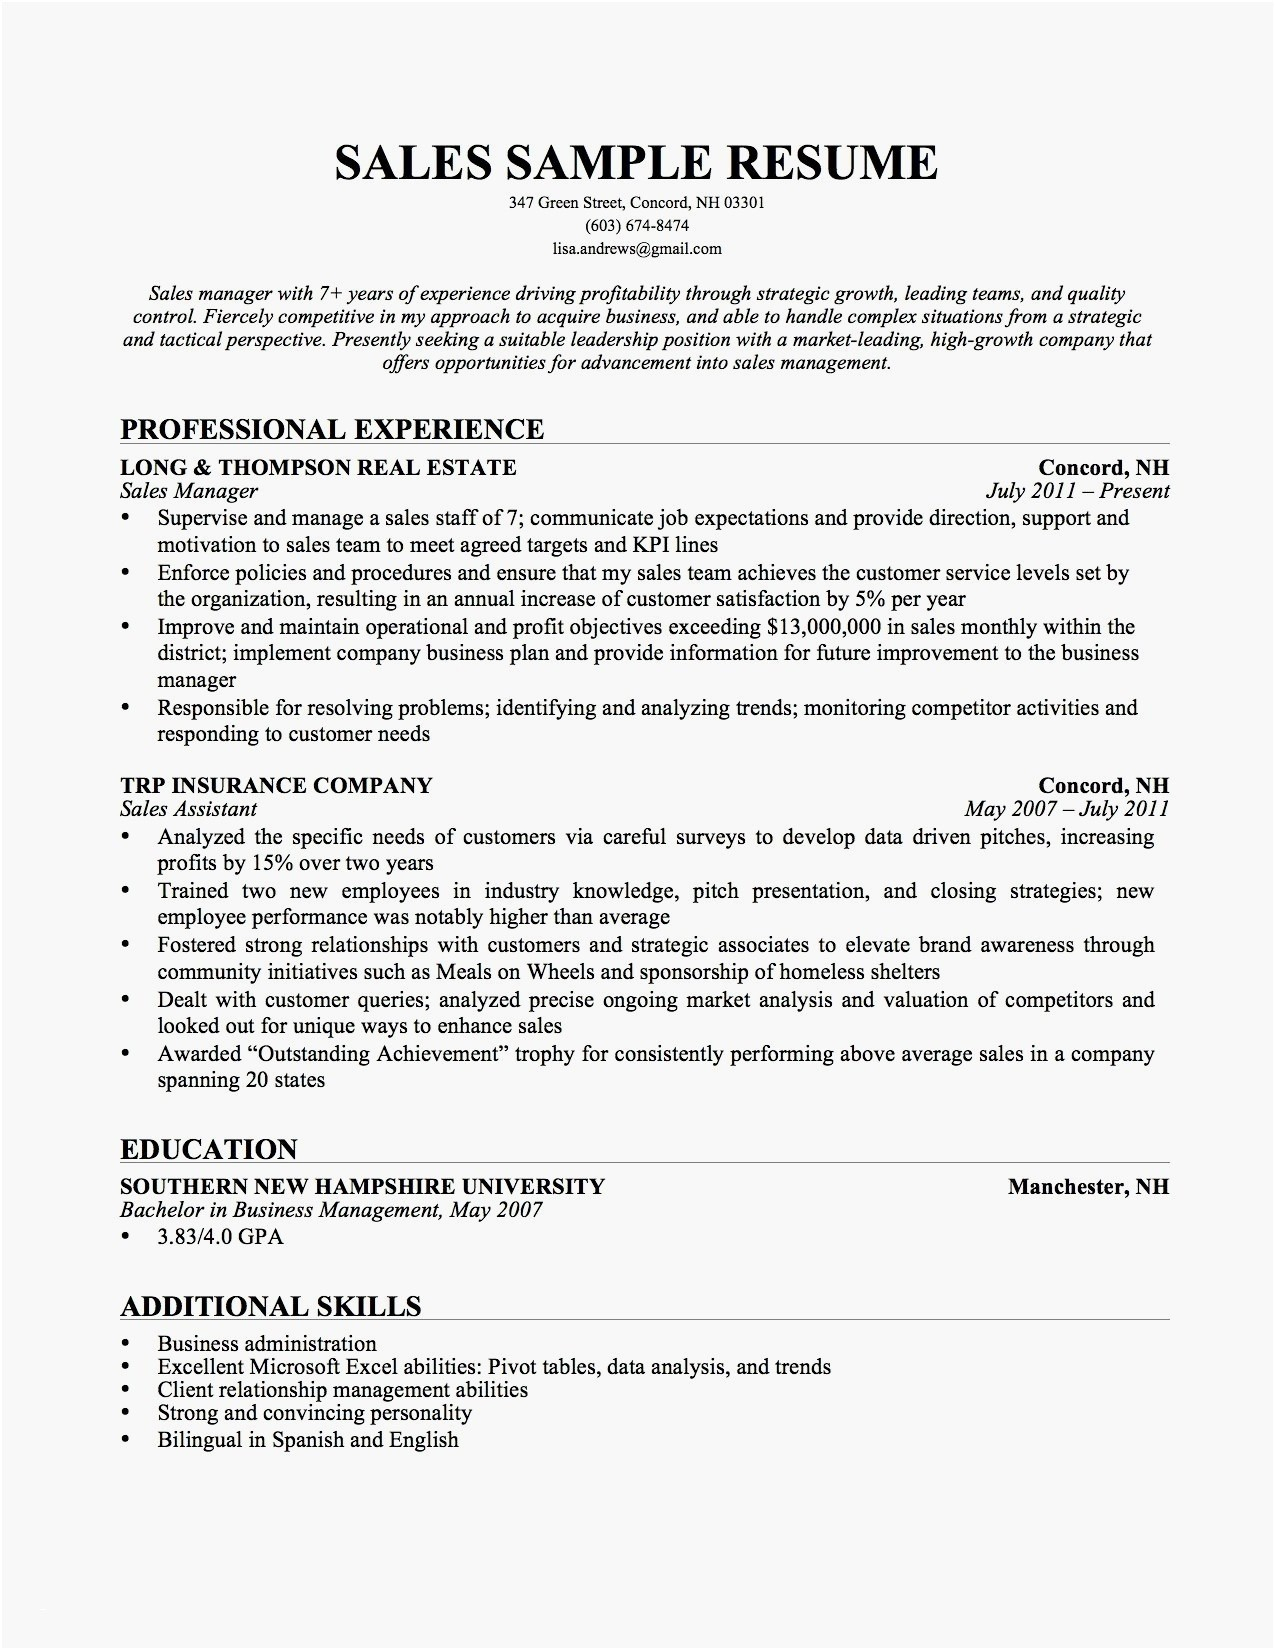 Picker Packer Job Description for Resume - Picker Packer Job Description for Resume